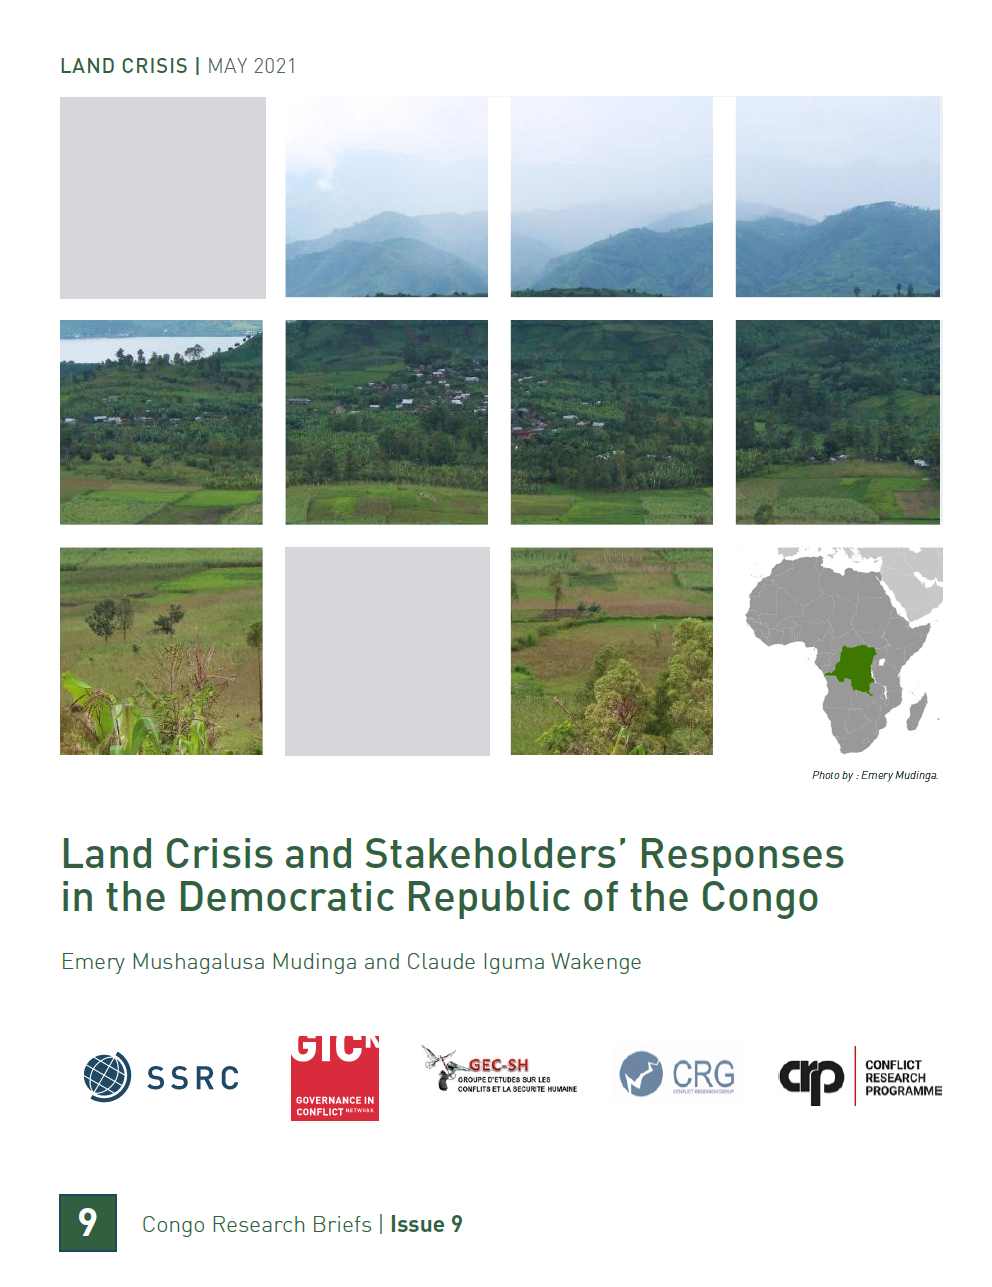 land-crisis-and-stakeholders-responses-in-the-democratic-republic-of-the-congo